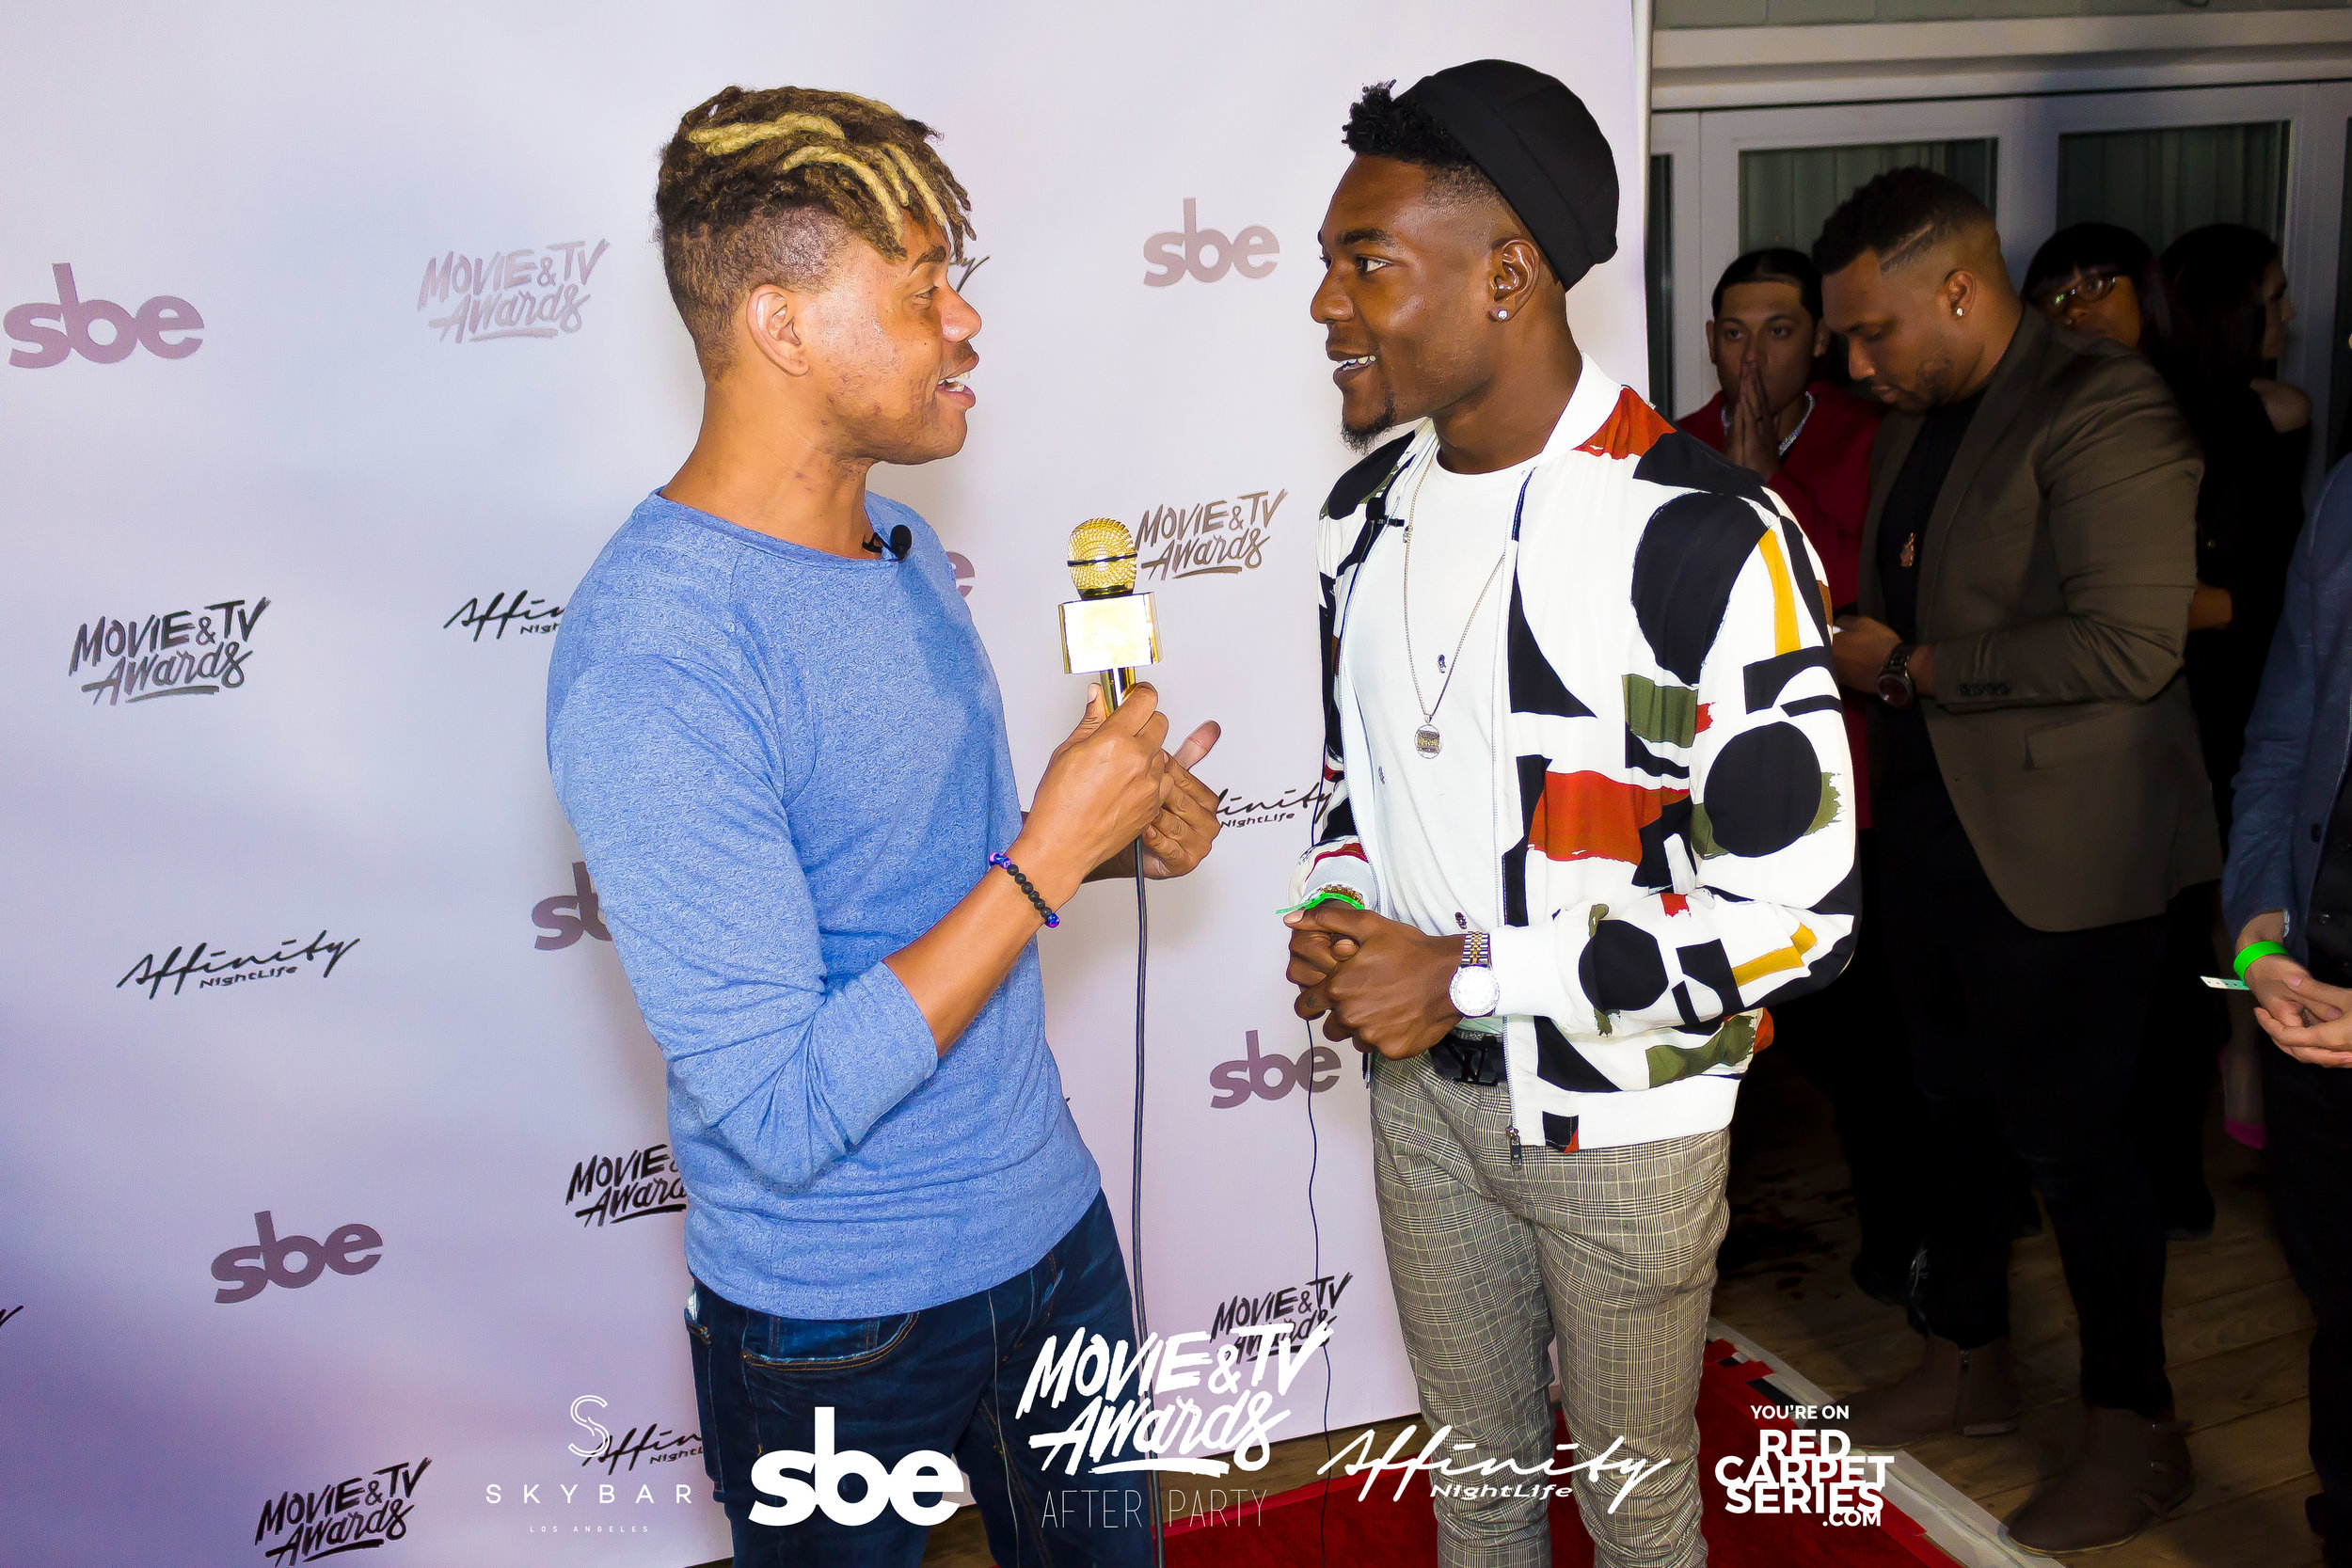 Affinity Nightlife MTV Movie & TV Awards After Party - Skybar at Mondrian - 06-15-19 - Vol. 1_48.jpg